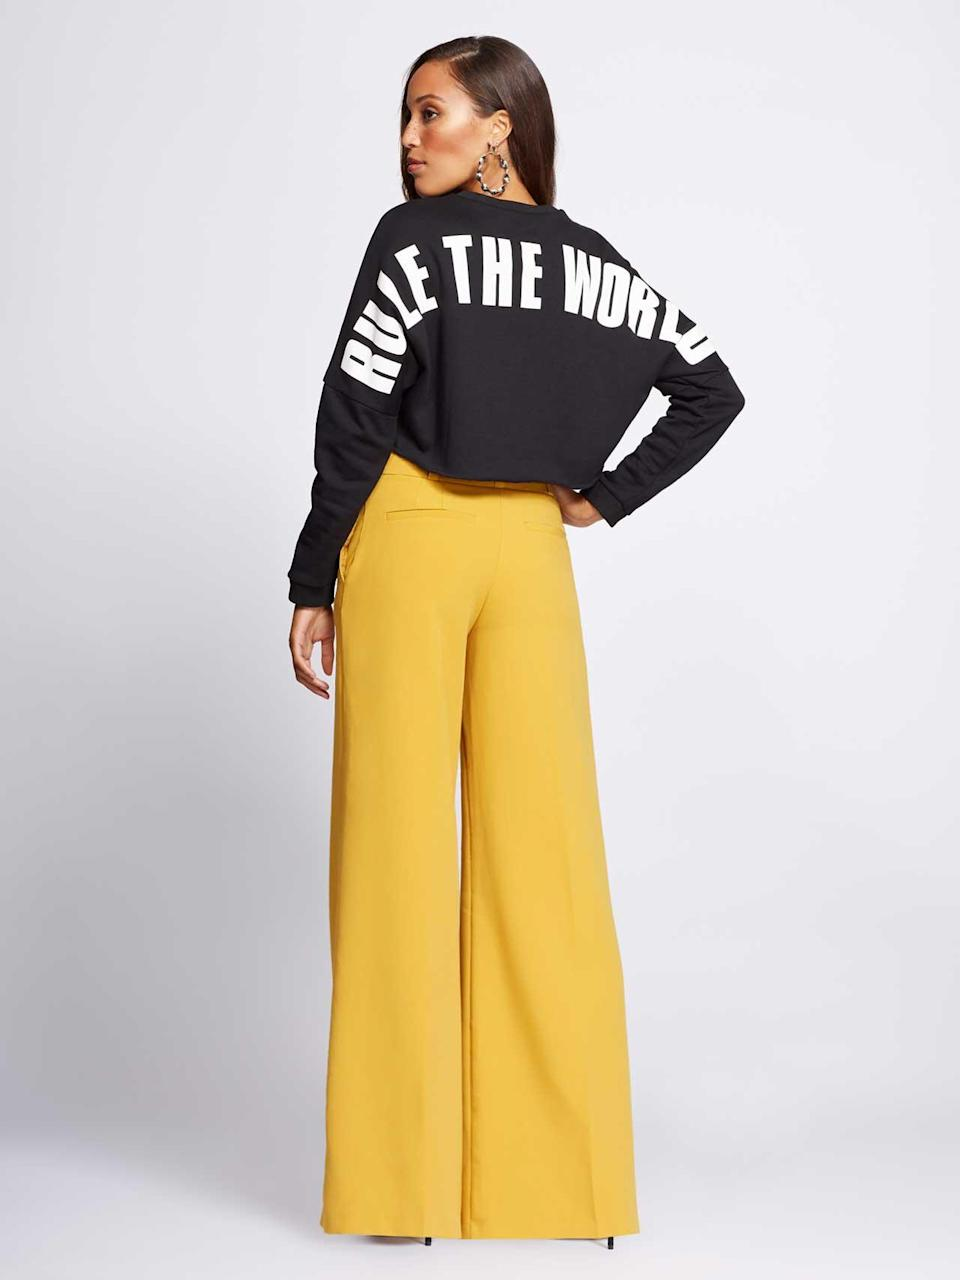 """Rule the World"" power look. (Photo: Courtesy of New York & Company)"